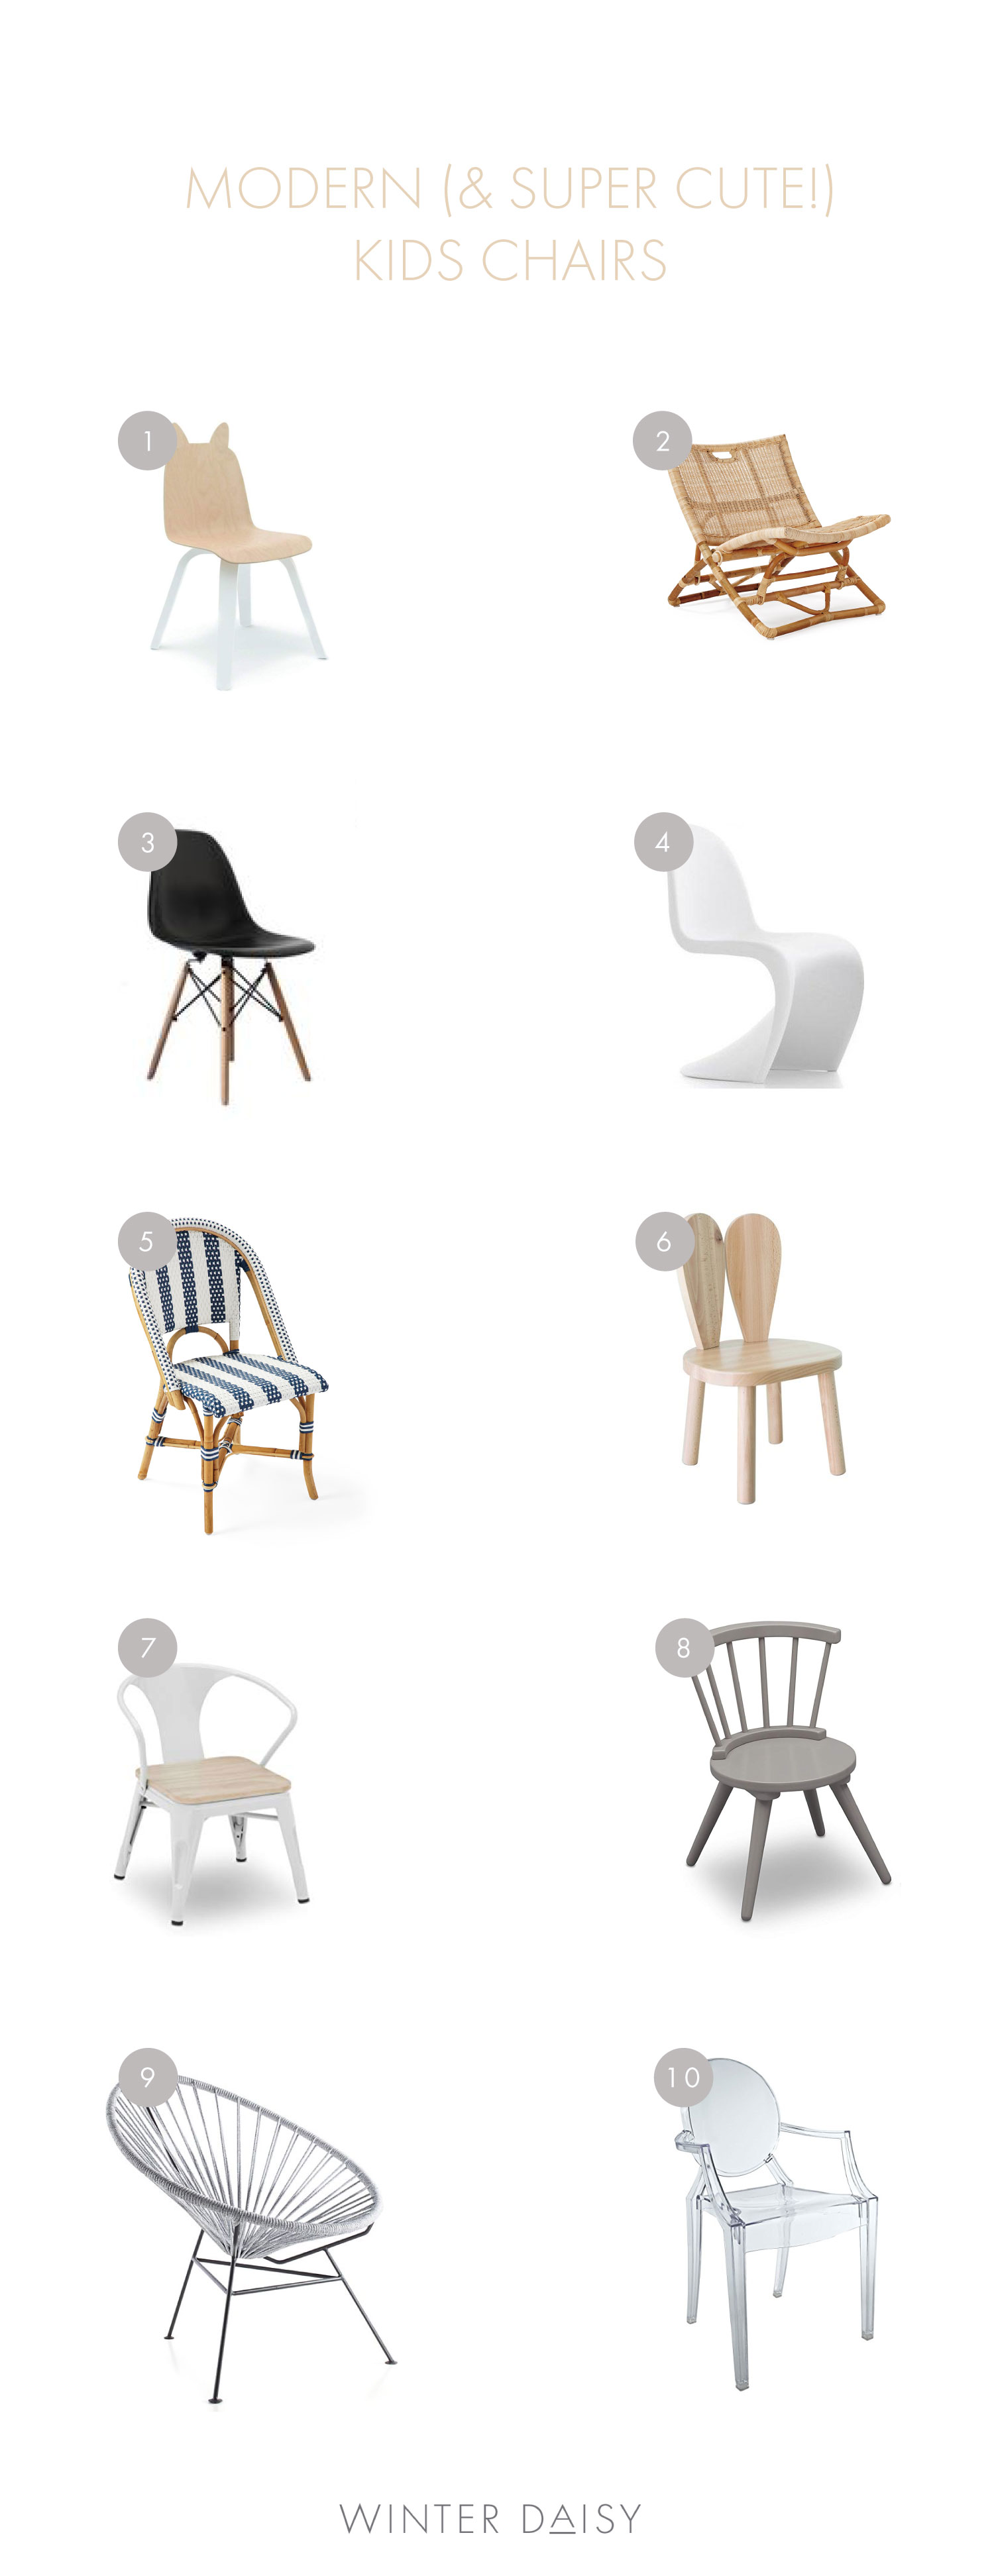 Modern (and super cute!) kids chairs